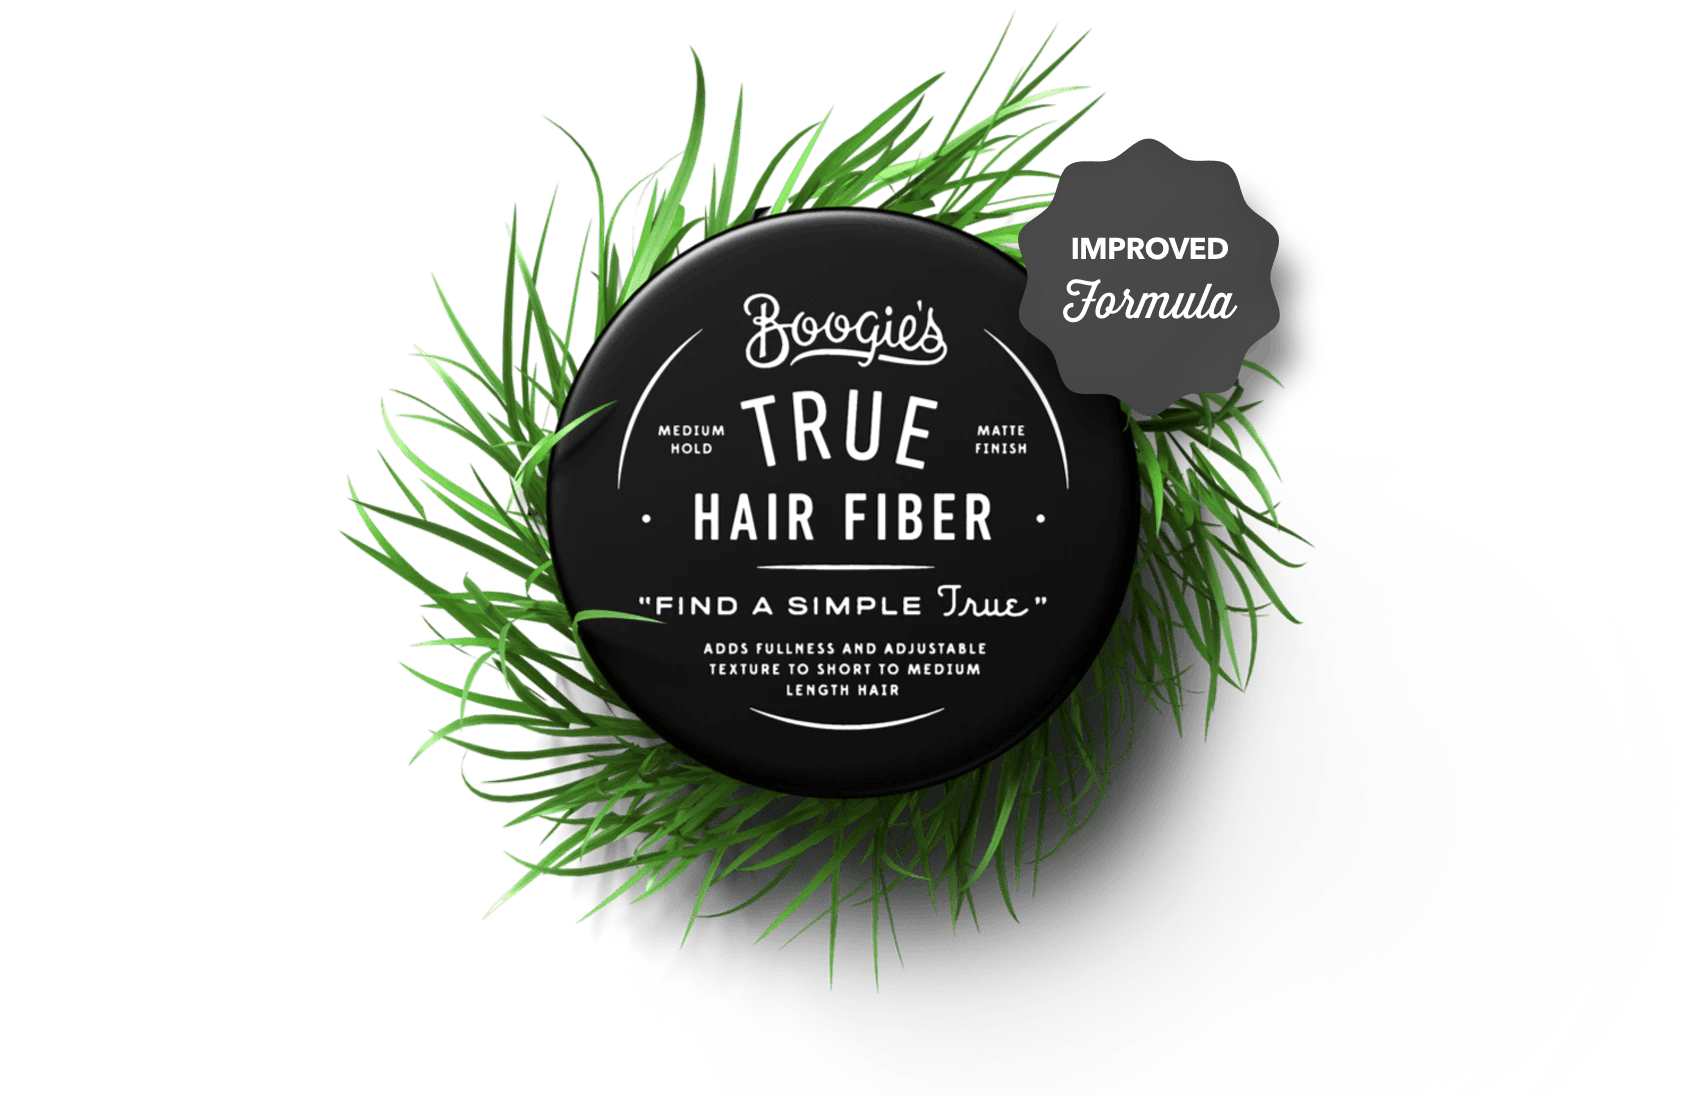 Hair Style Png: Boogie's True Hair Fiber